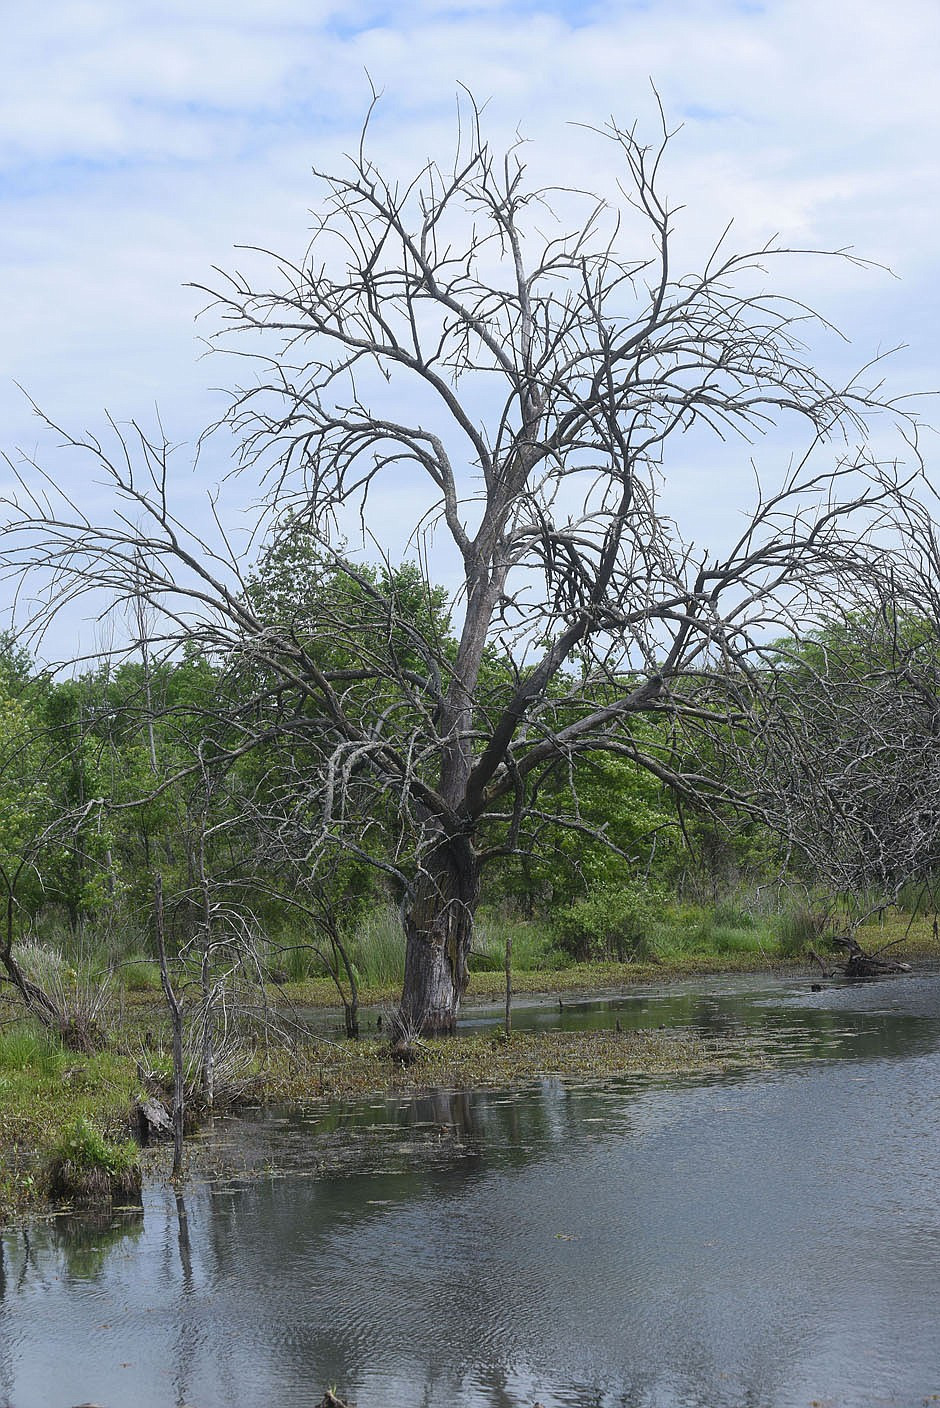 Branches go in all directions on a tree  May 14 2021 in the Osage Park wetland.  (NWA Democrat-Gazette/Flip Putthoff)